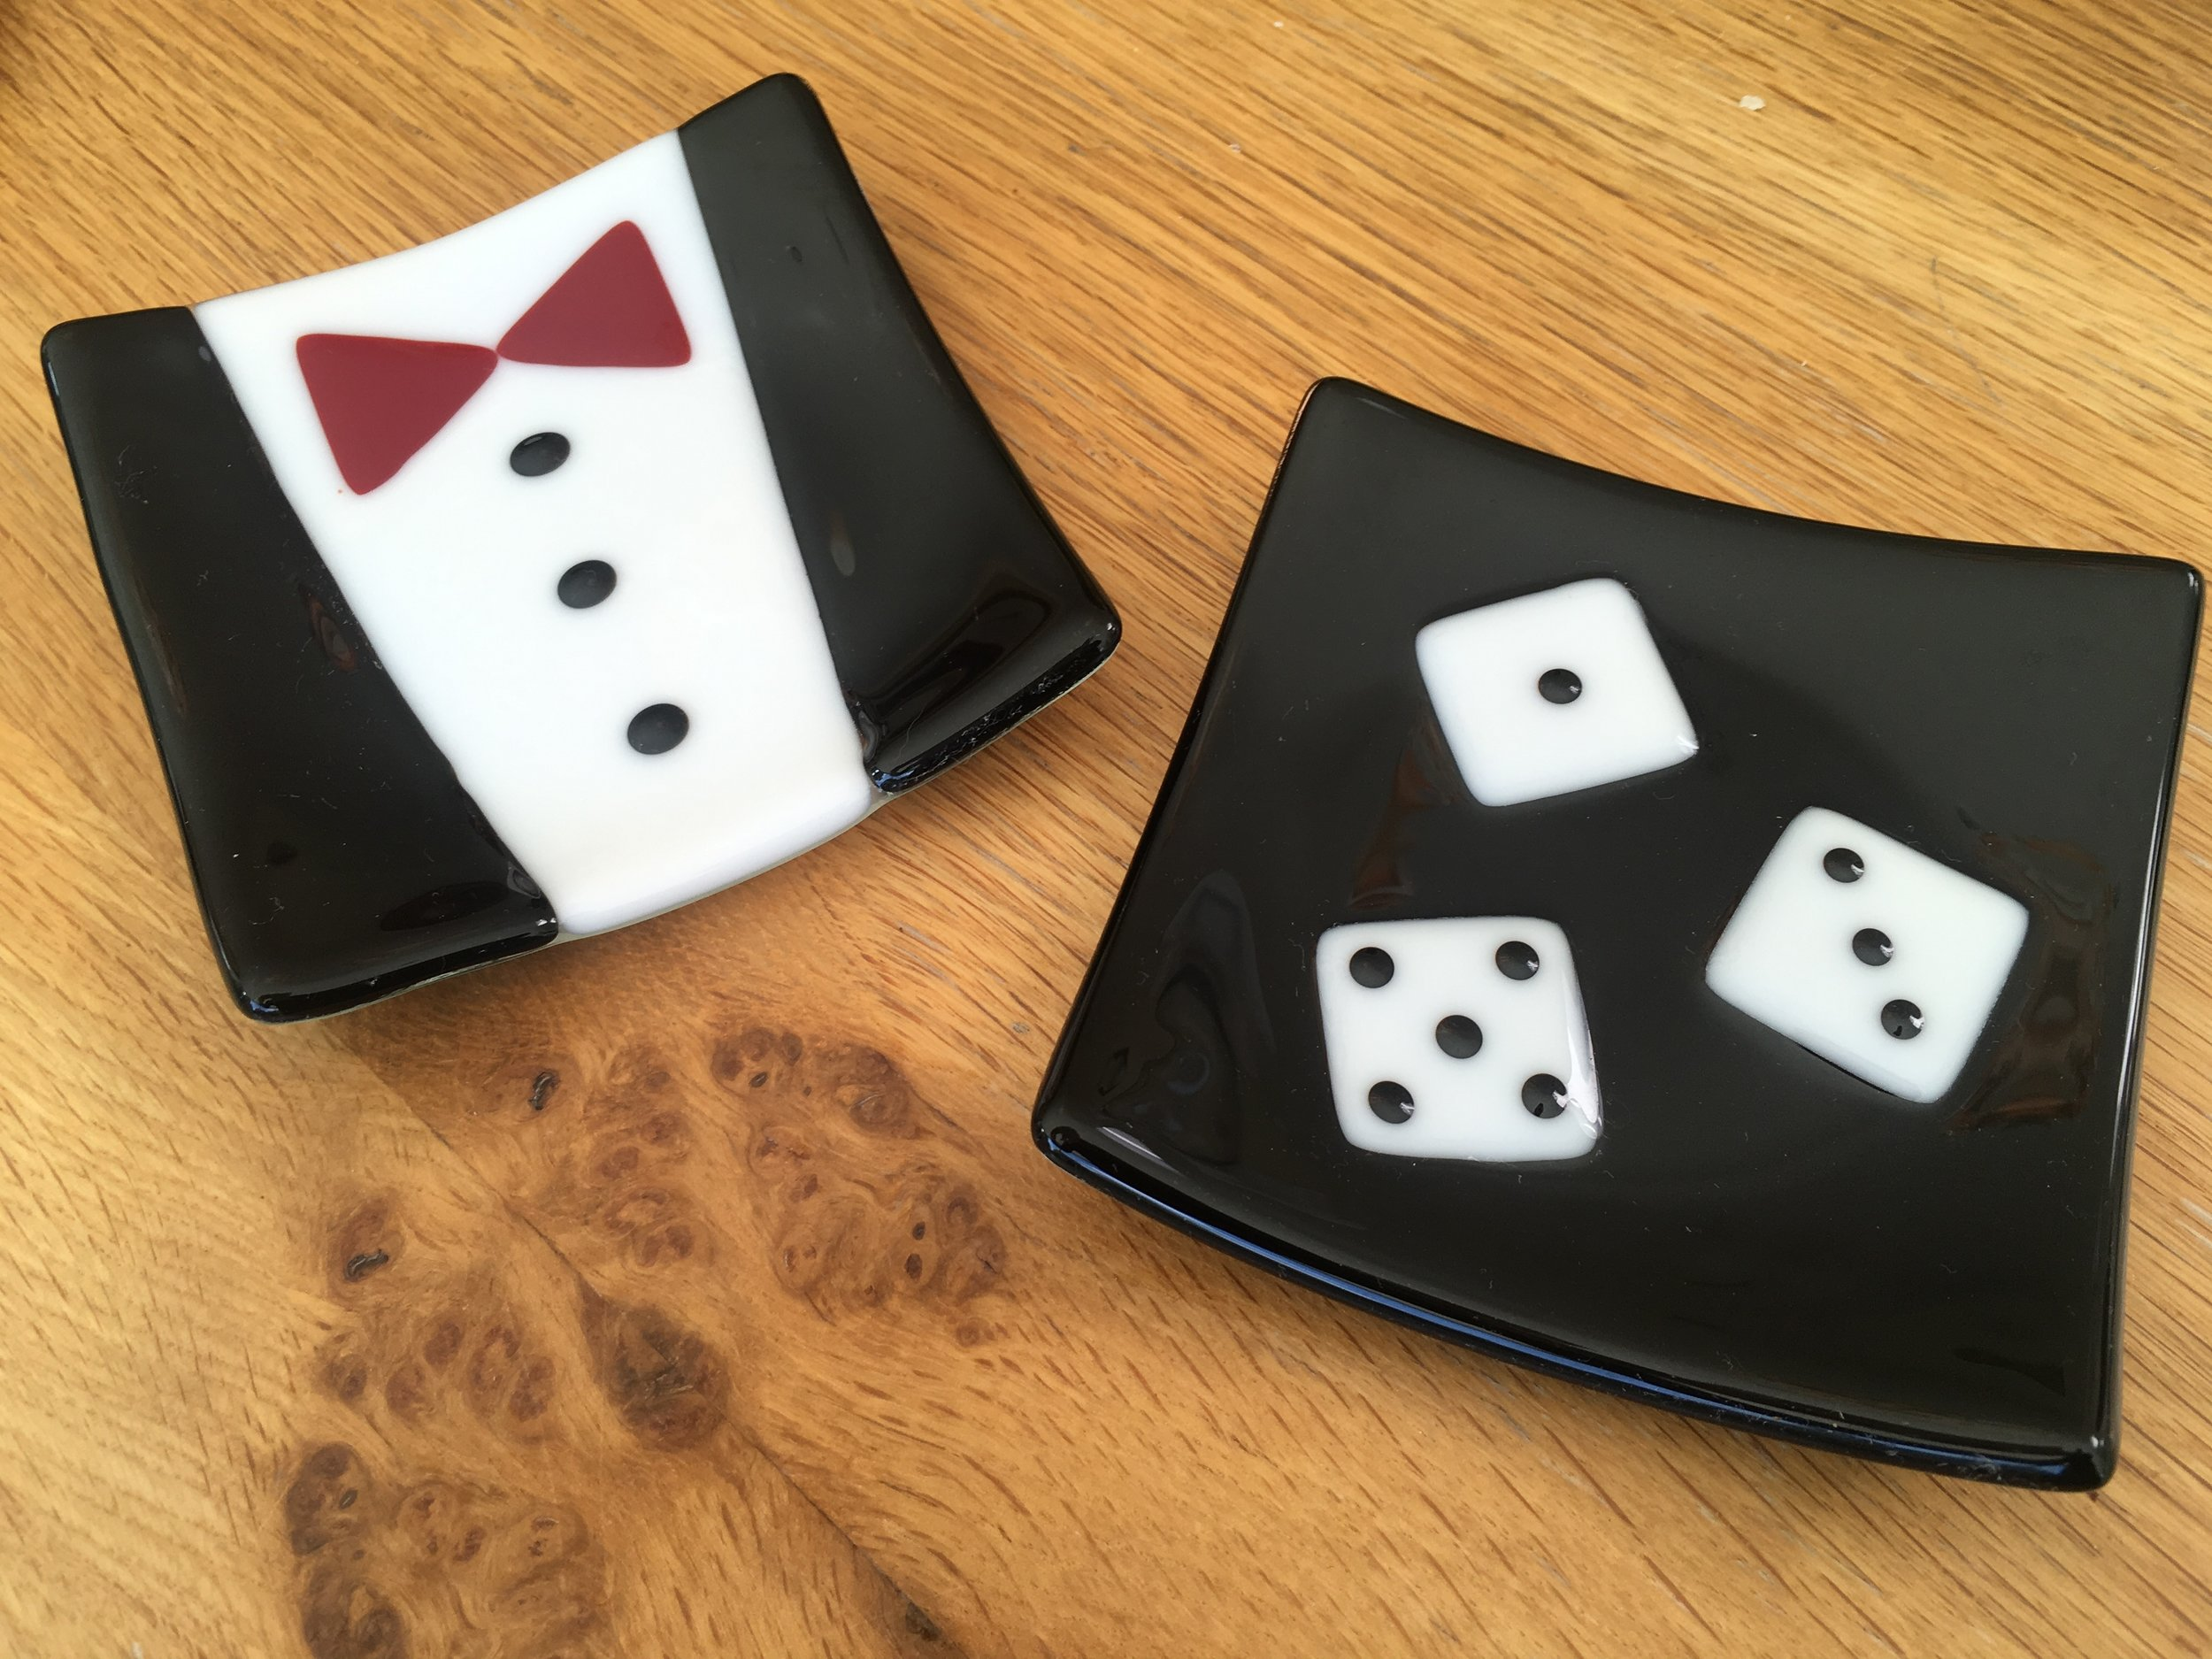 Dinner jacket and small dice